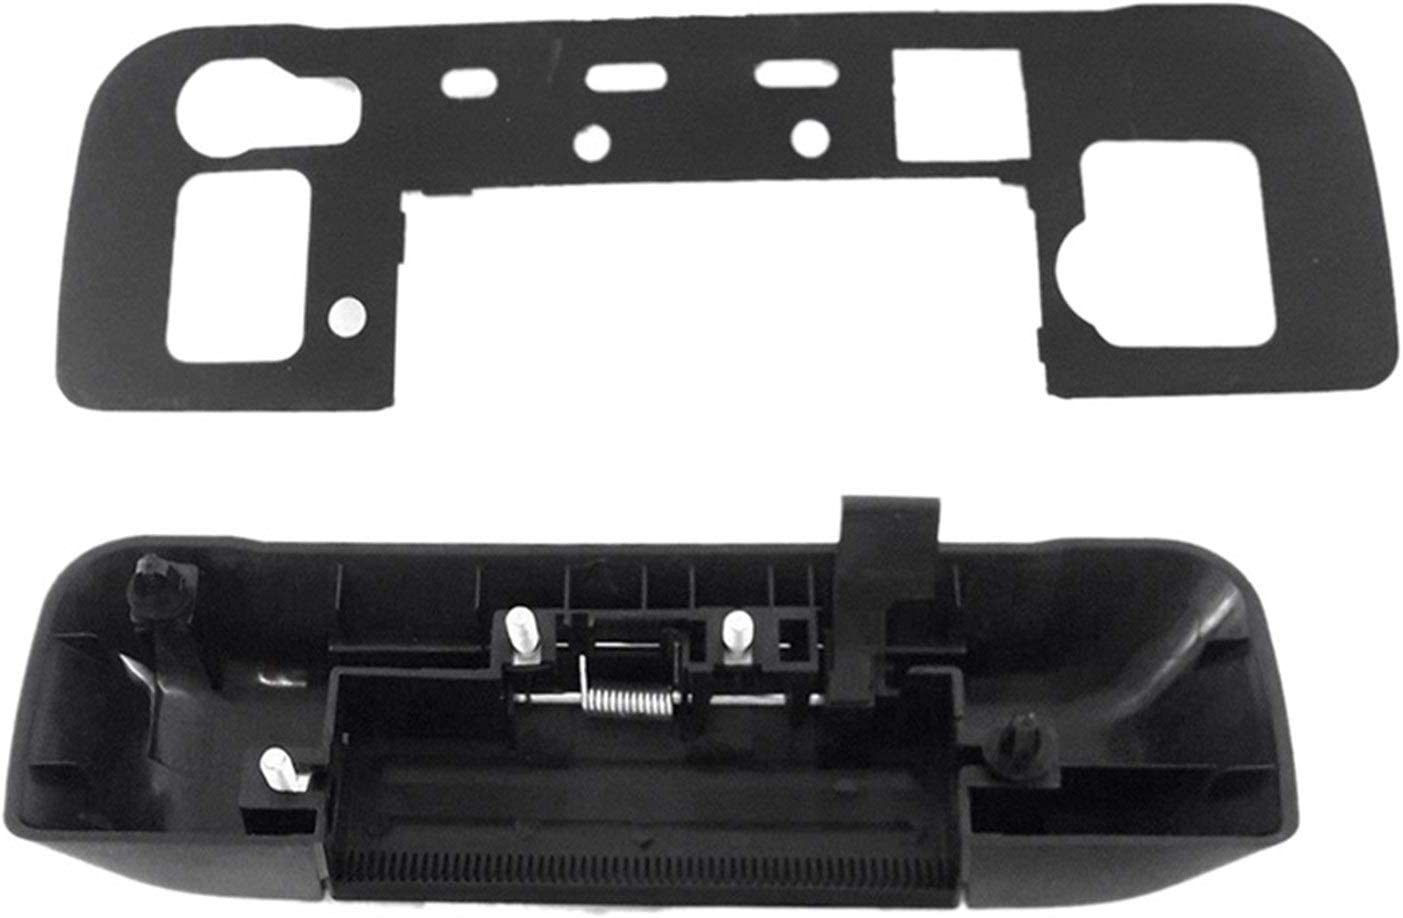 Color : Black SHOUNAO Hinten Au/ßen Au/ßen Tailgate Trunk T/ürgriff gepasst for Suzuki Vitara Grand Vitara 1998-2005 8285065D125Pk 82850-65D13